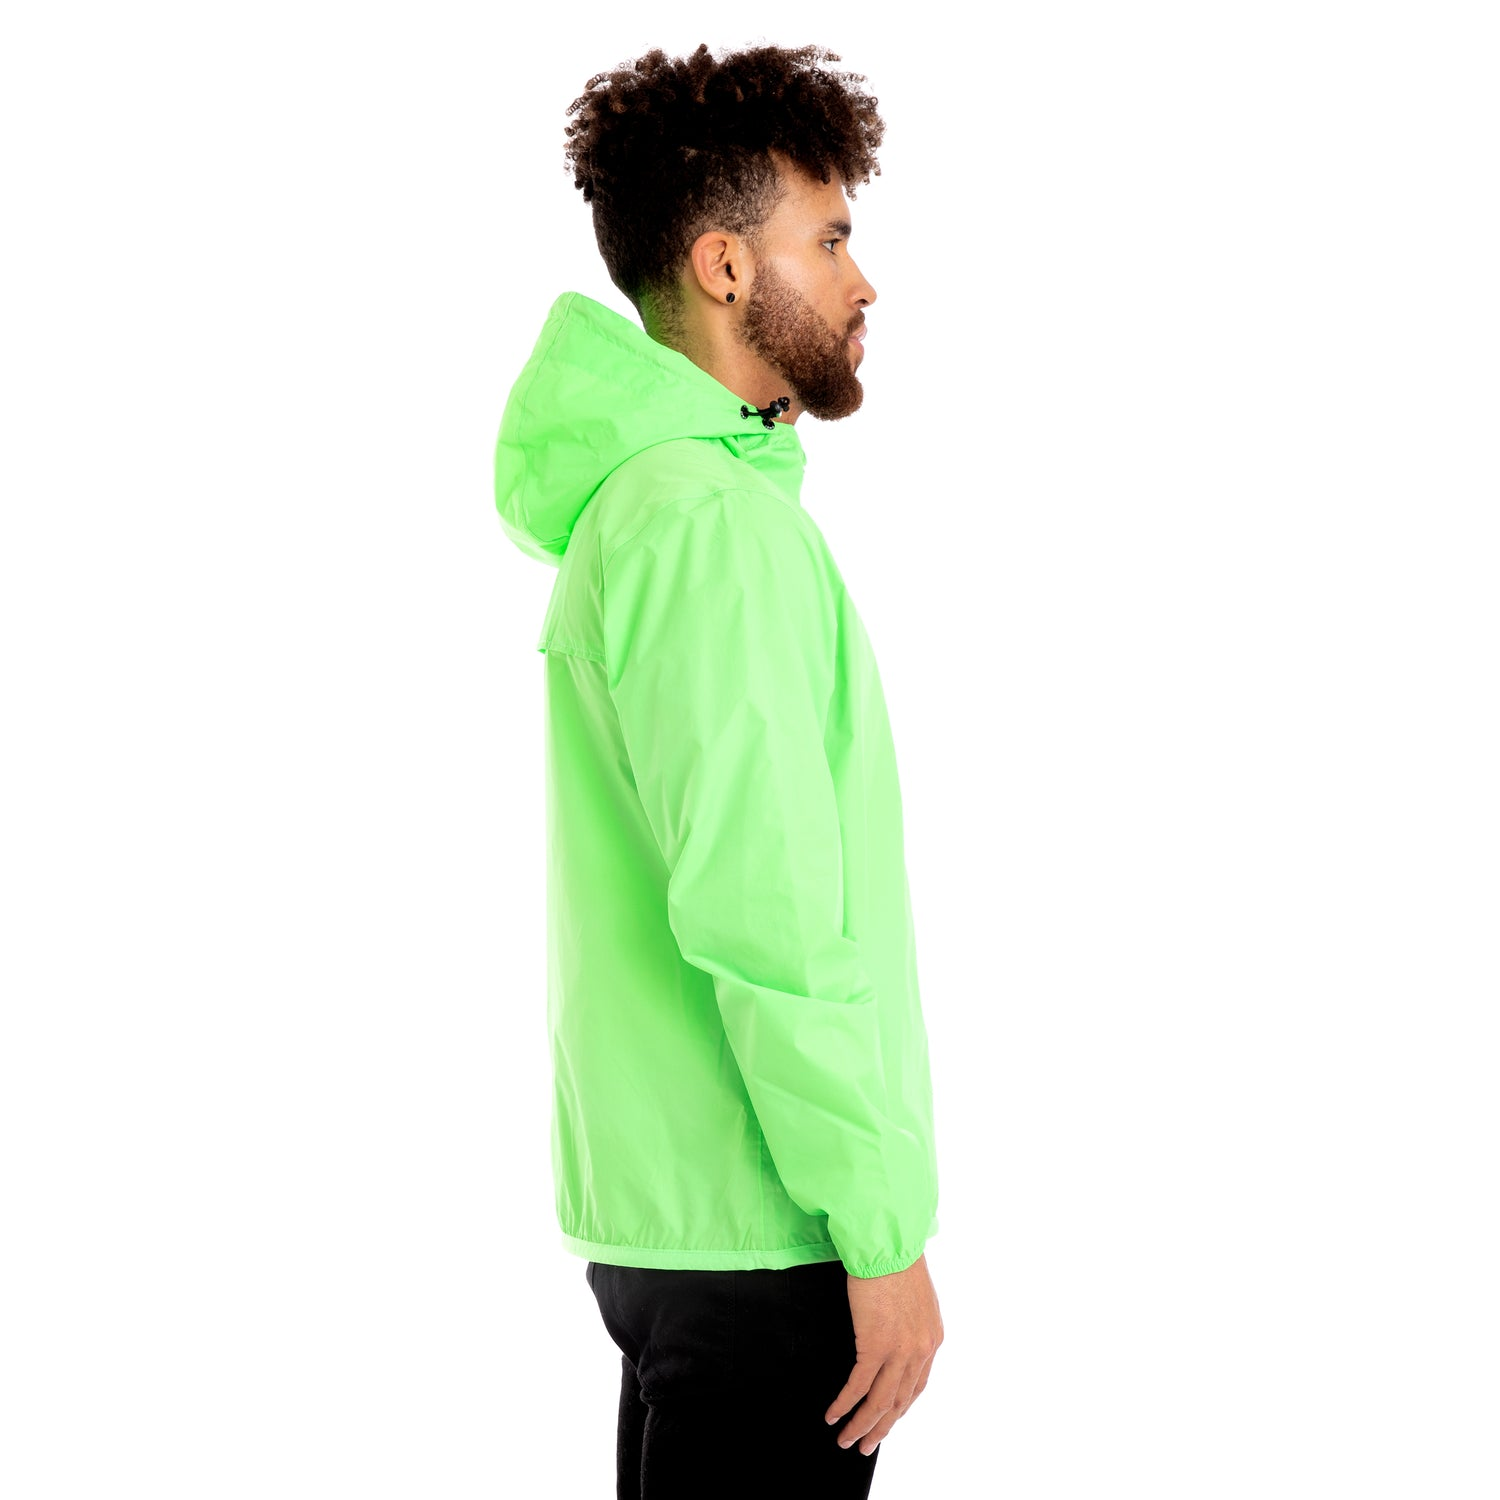 K-Way Men's Le Vrai 3.0 Claude Jacket Green Fluo